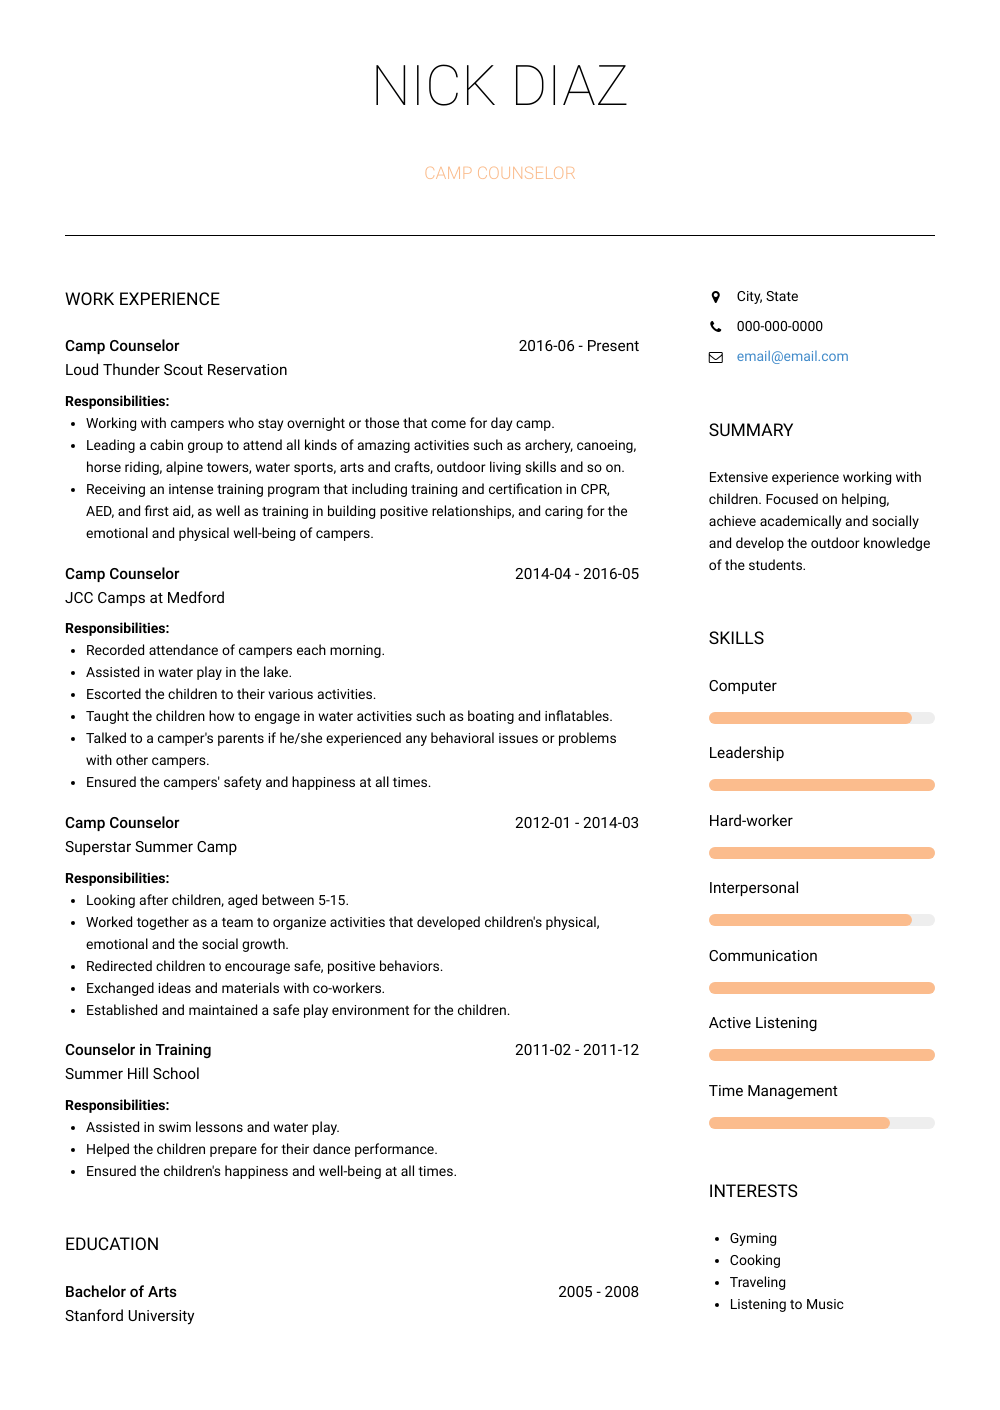 Camp Counselor Resume Sample and Template